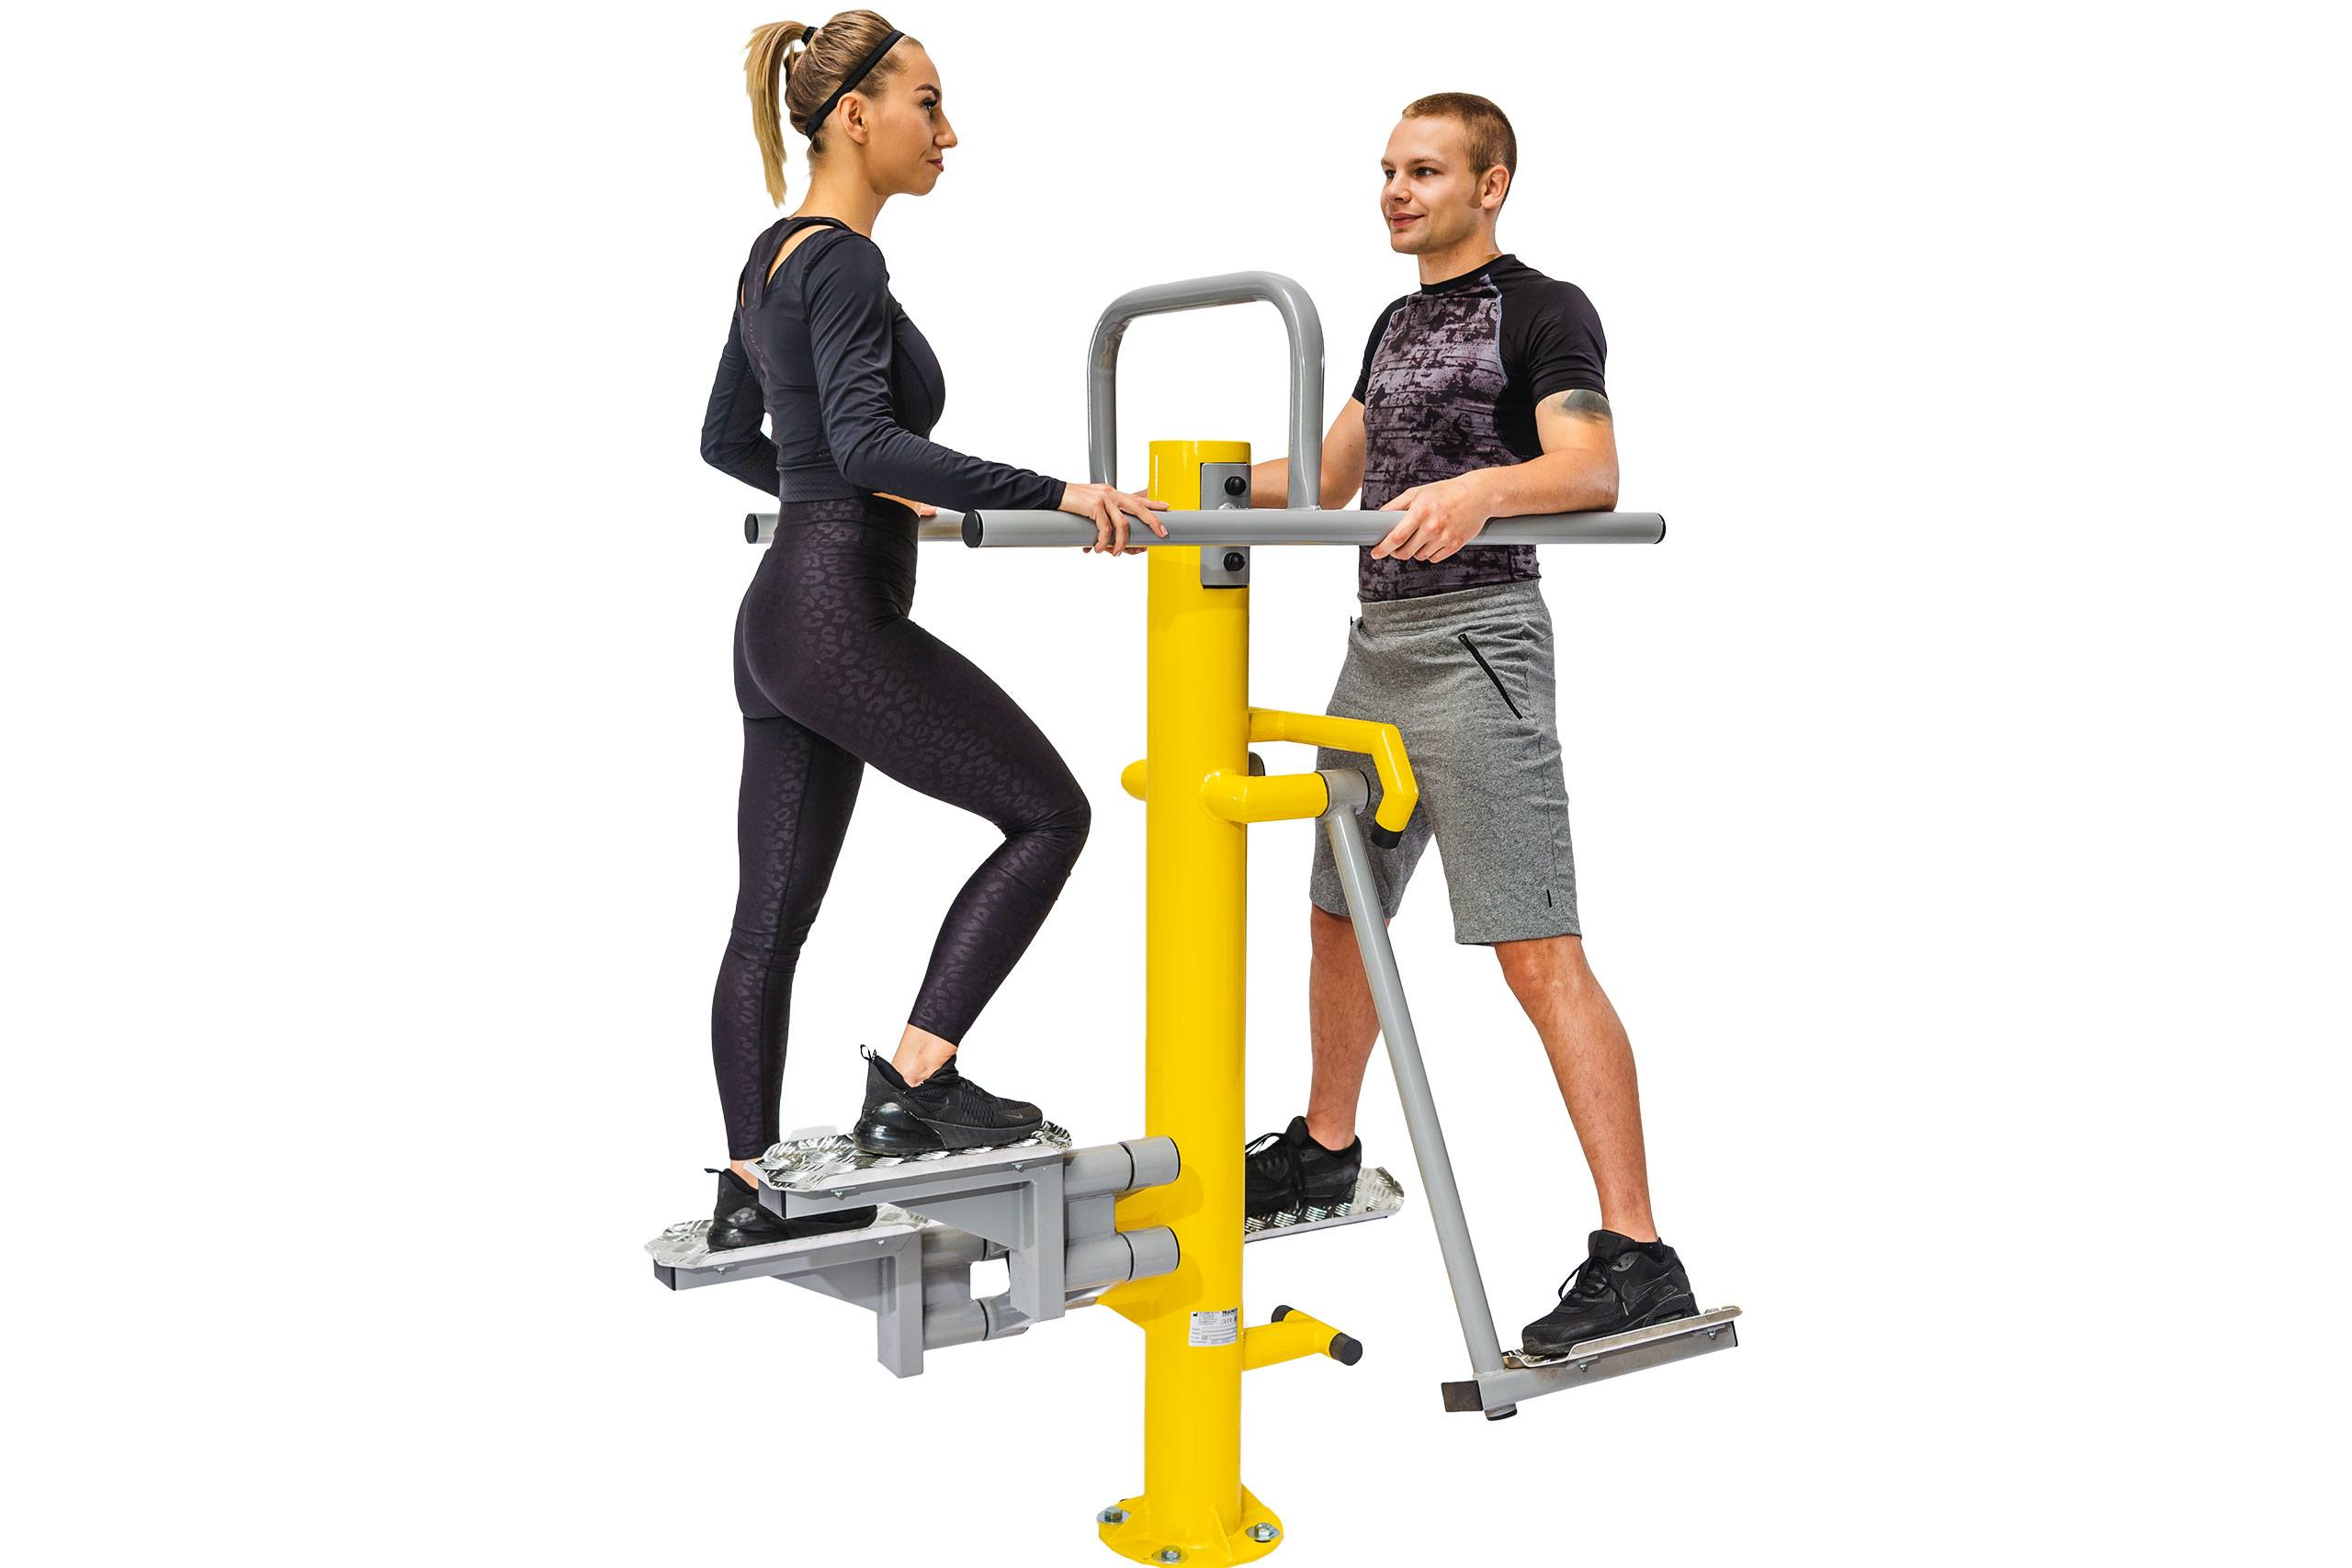 Abductor & Stepper Outdoor Fitness Equipment